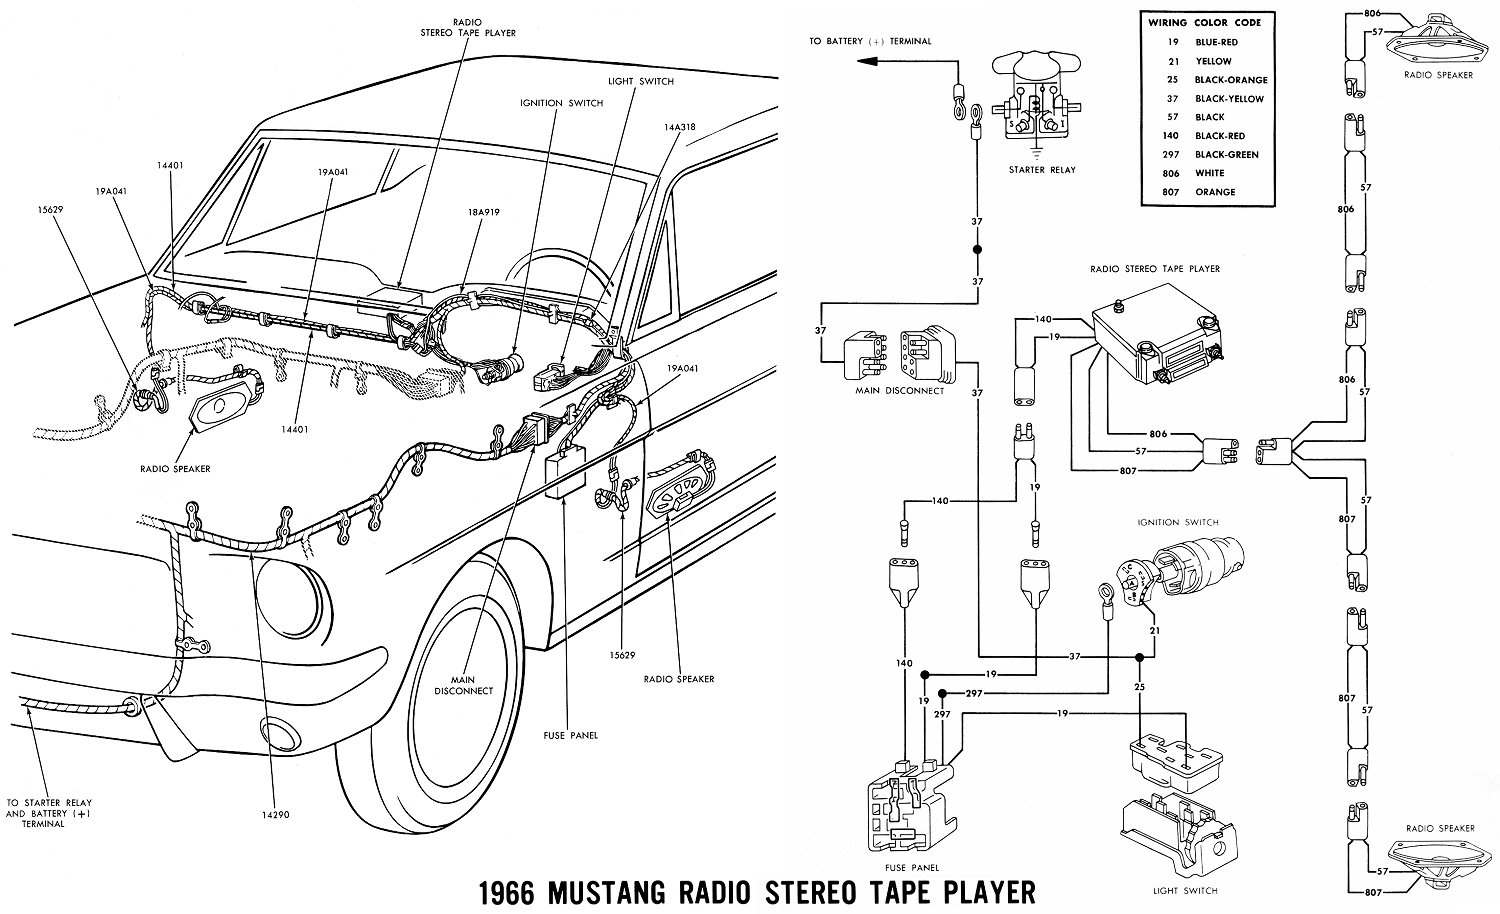 hight resolution of 1966 mustang wiring diagrams average joe restoration 66 mustang dimmer switch wiring diagram 66 mustang wiring diagram